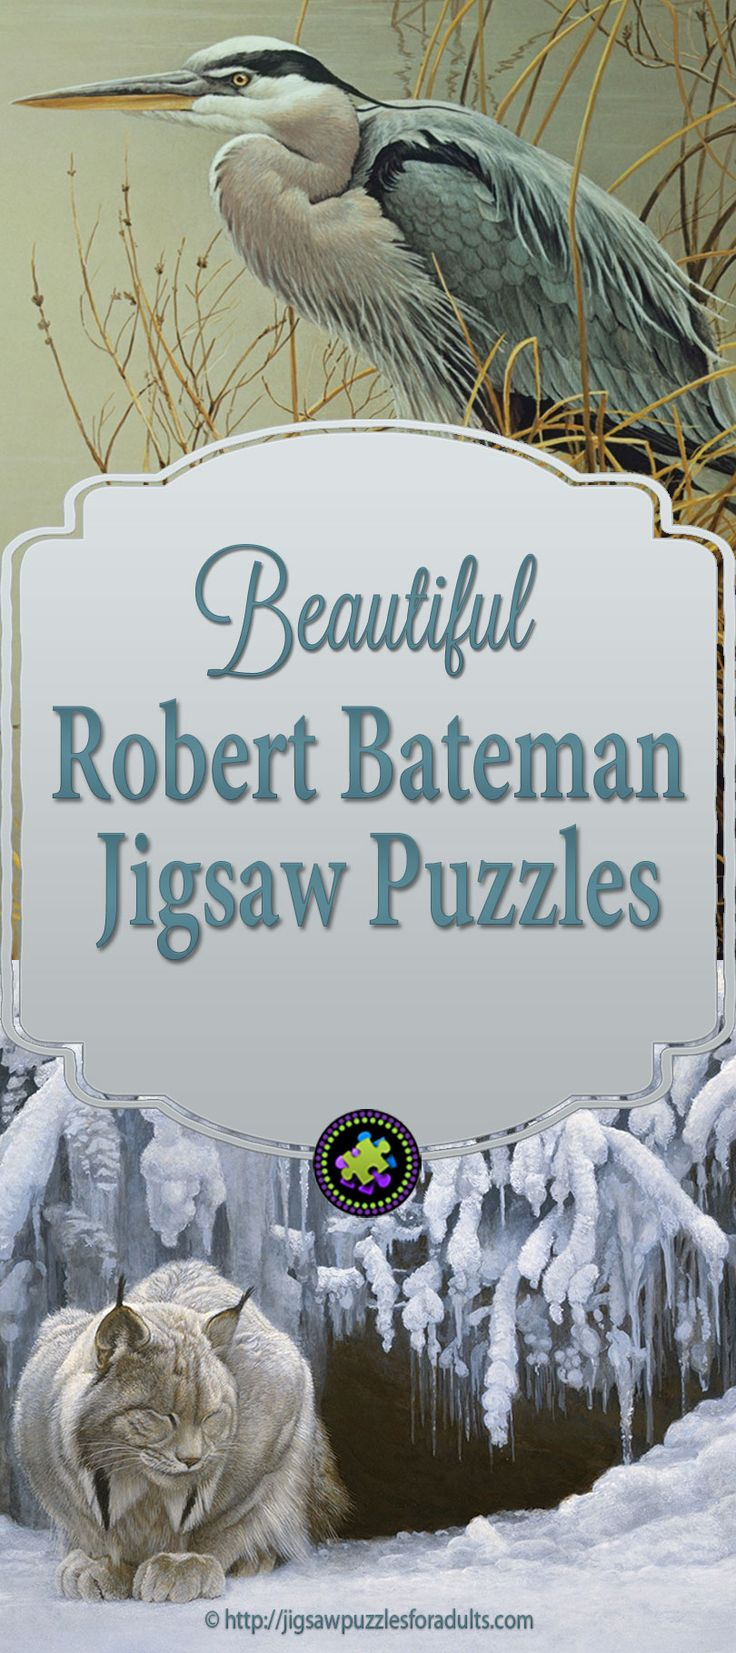 Robert Bateman Jigsaw Puzzles are absolutely stunning and if you are a fan of fine art and wildlife you'll find these Robert Bateman Jigsaw Puzzles a joy to work on.